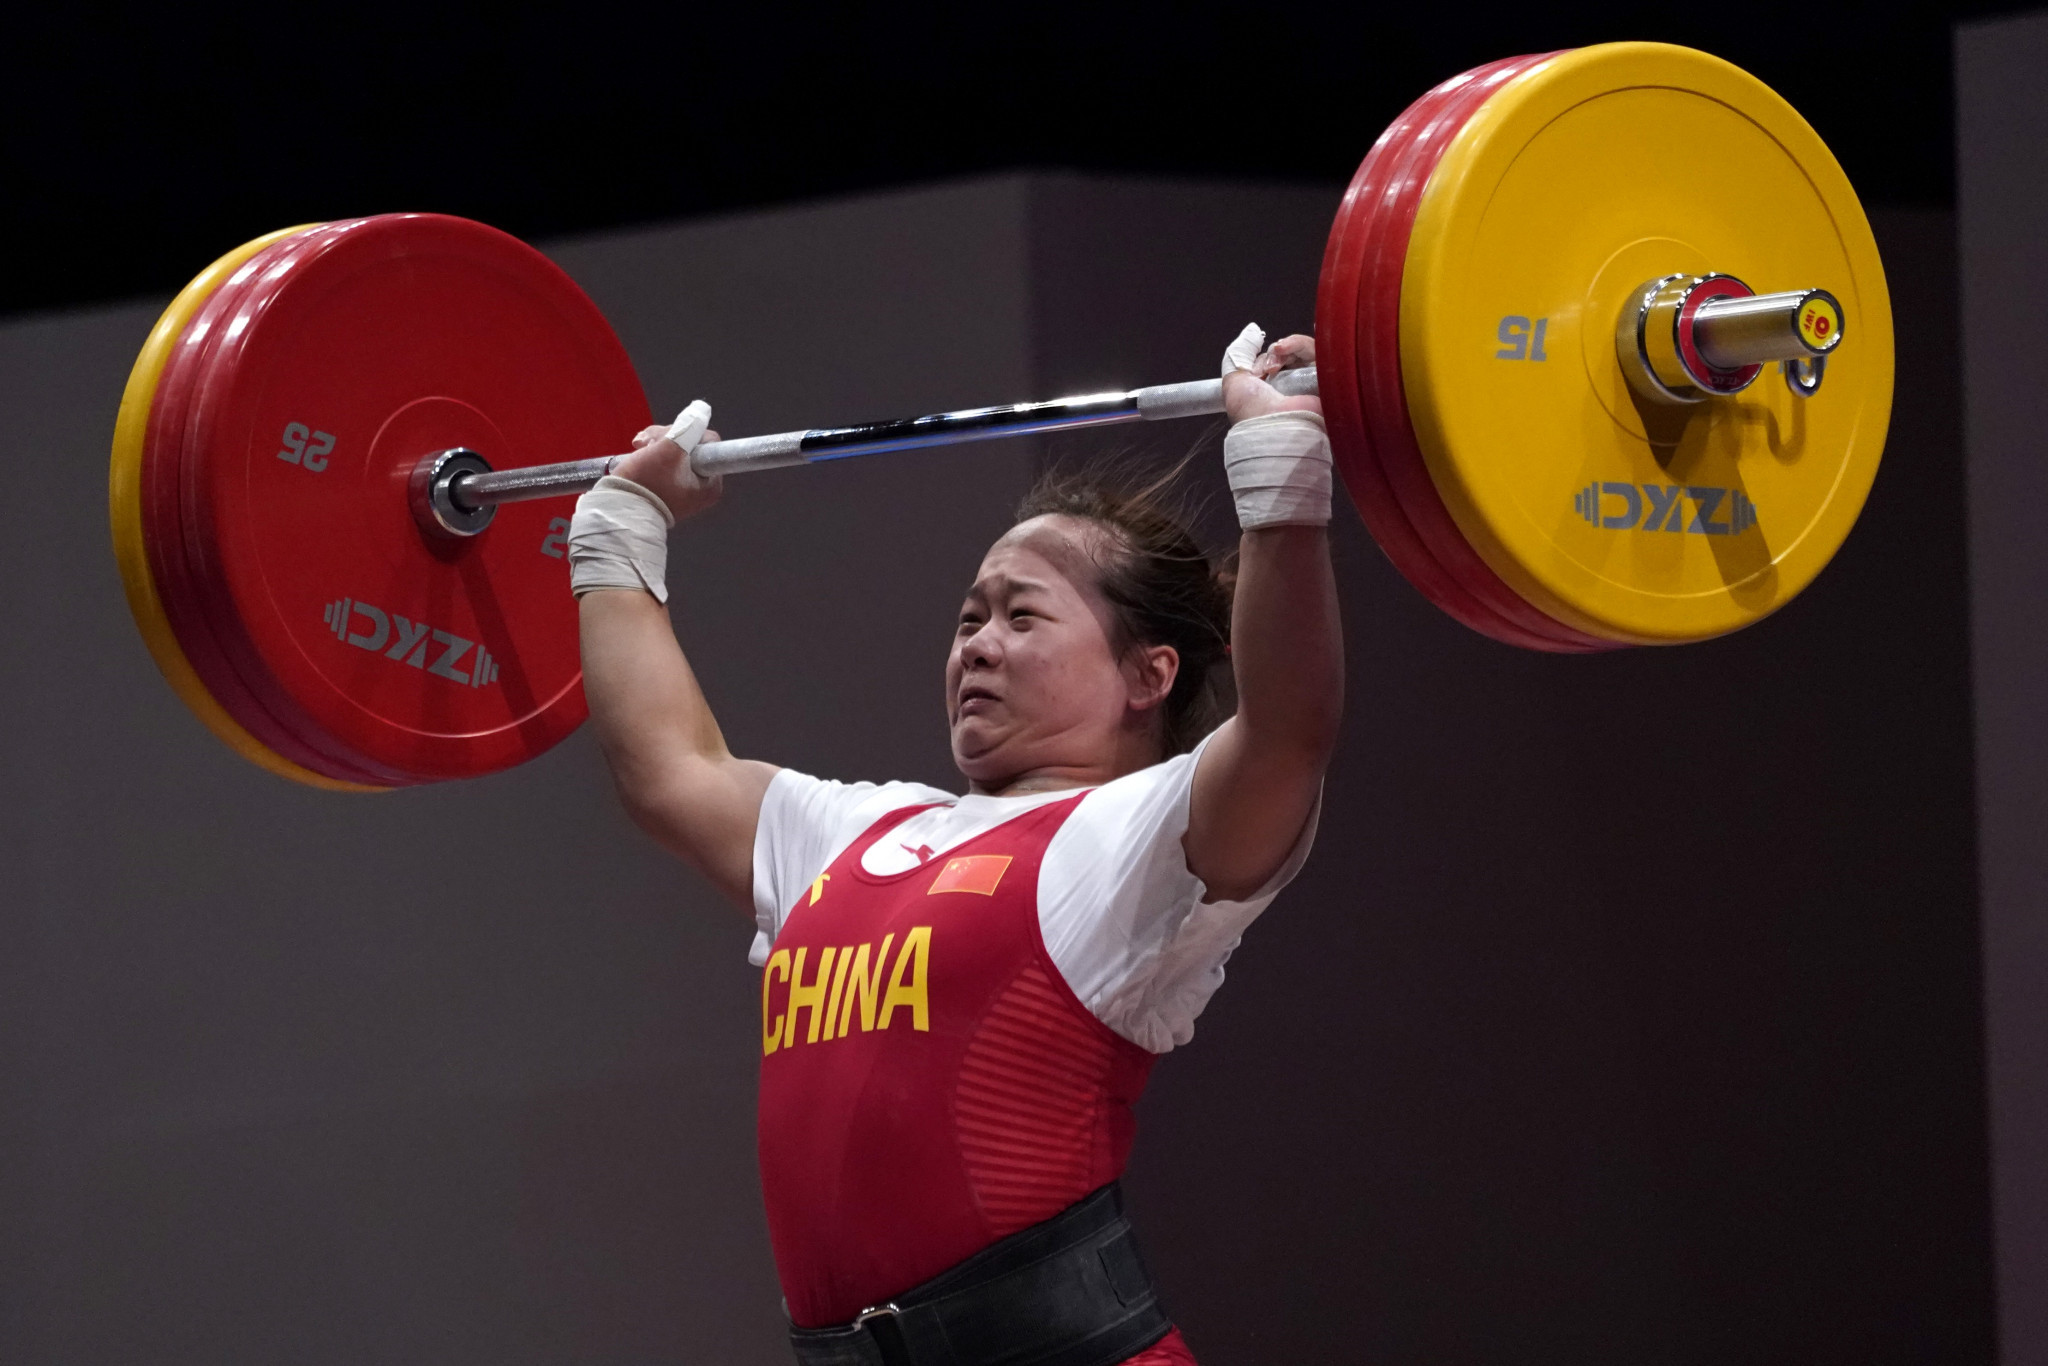 China's Zhang Wangli will go top of the Olympic rankings after winning the women's 76kg category at the Asian Championships ©Getty Images